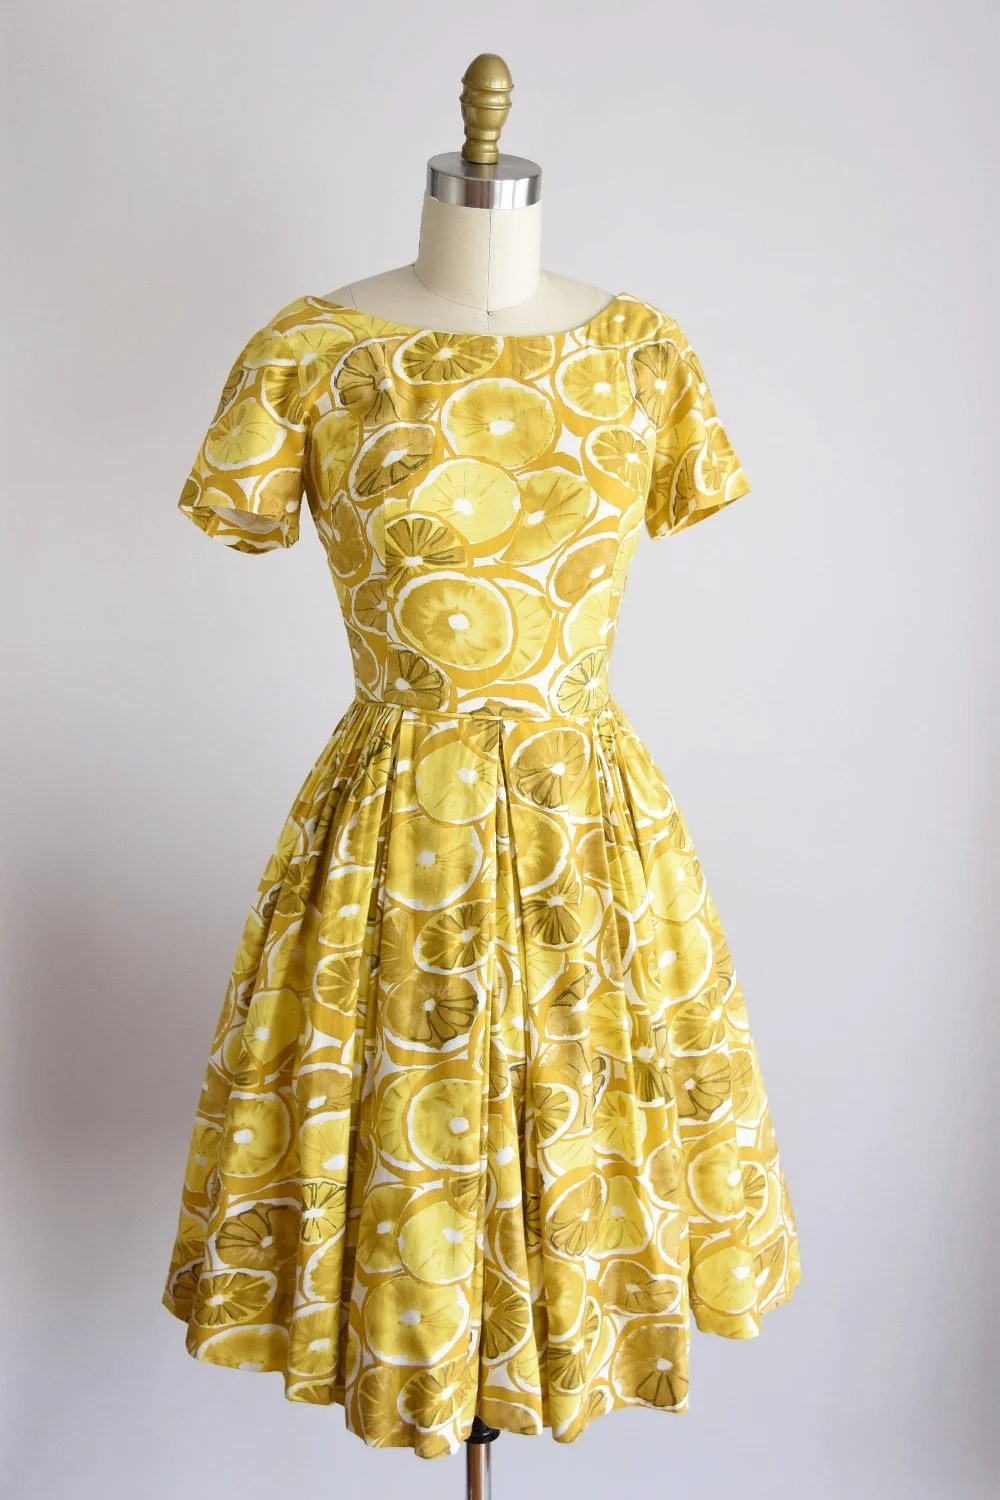 Bett Sale Sale 1950s Lemonade Dress Vintage 50s Novelty Daydress Sa Bett Of California Lemon Dress